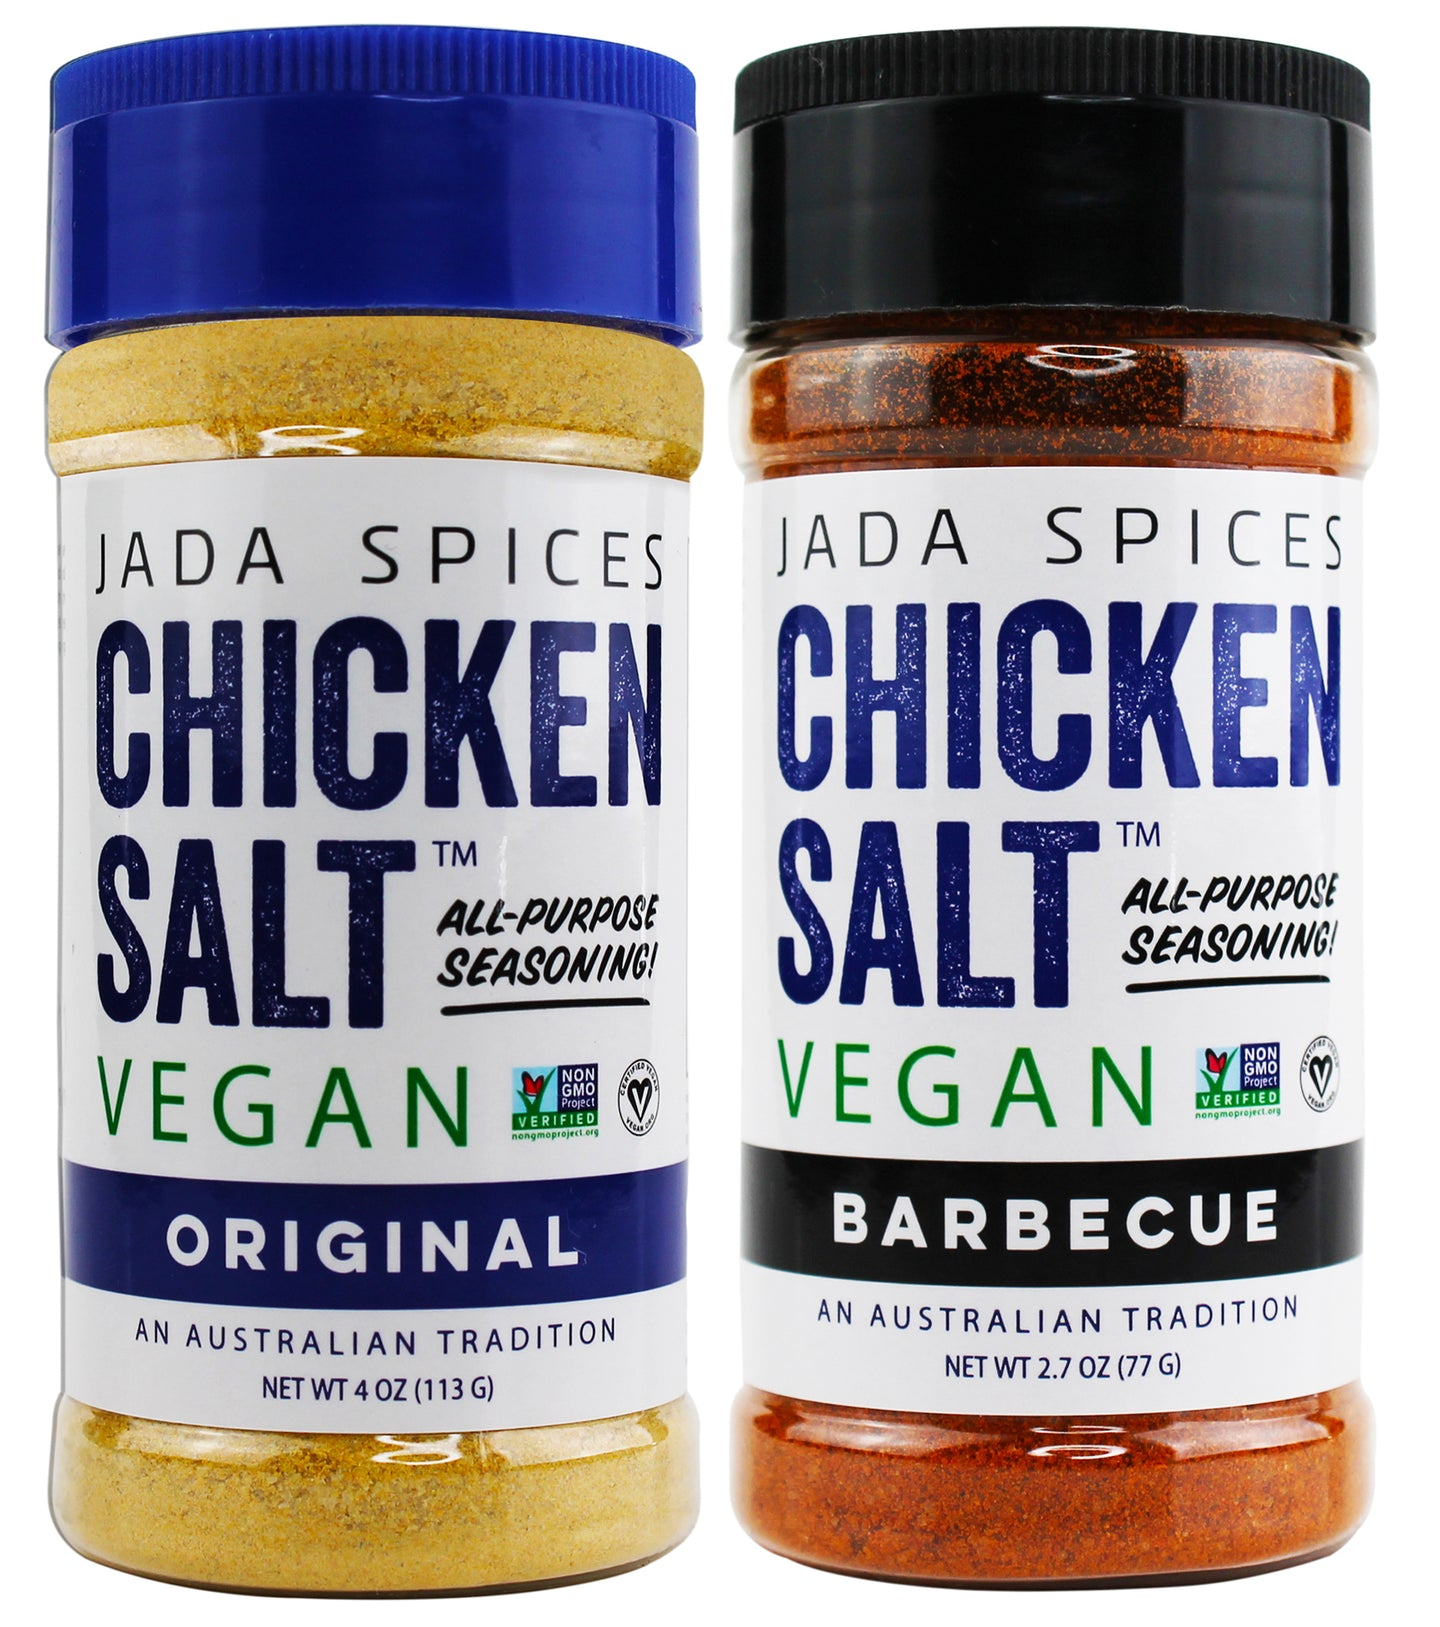 chicken salt vegan and vegetarian seasoning original and barbecue flavors